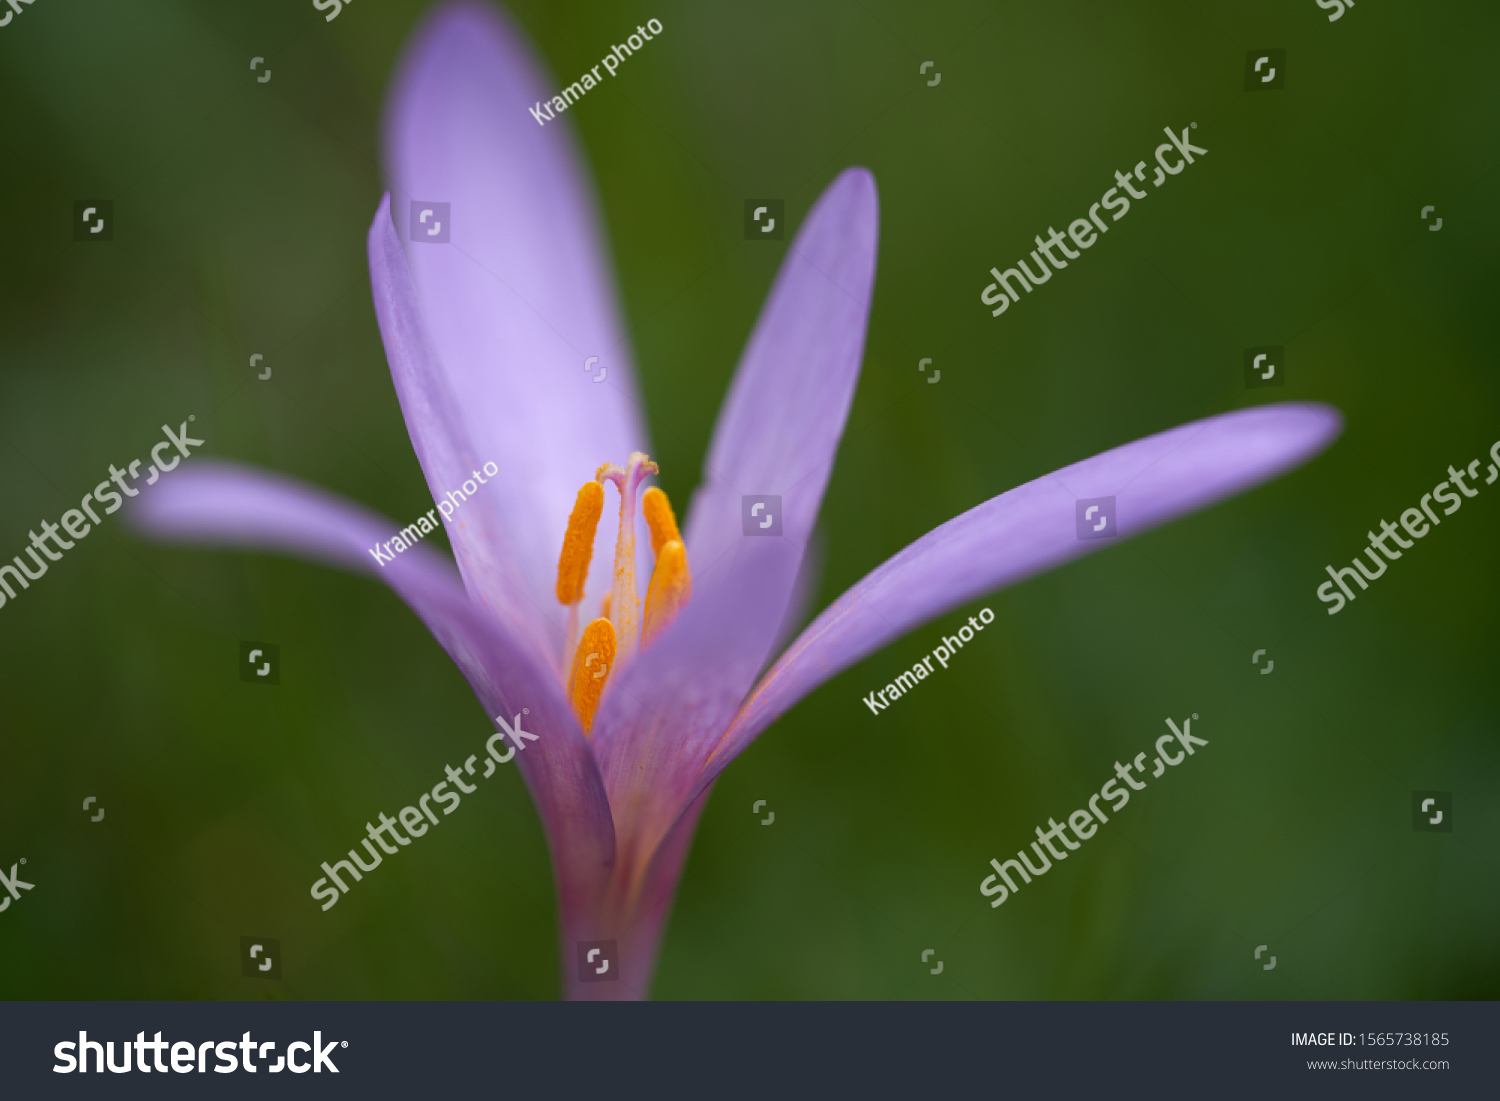 Detail of wild flower Colchicum autumnale on the forest meadow. Known as autumn crocus, meadow saffron or naked ladies. Beautiful violet flower on green background. Autumn time on the meadow.